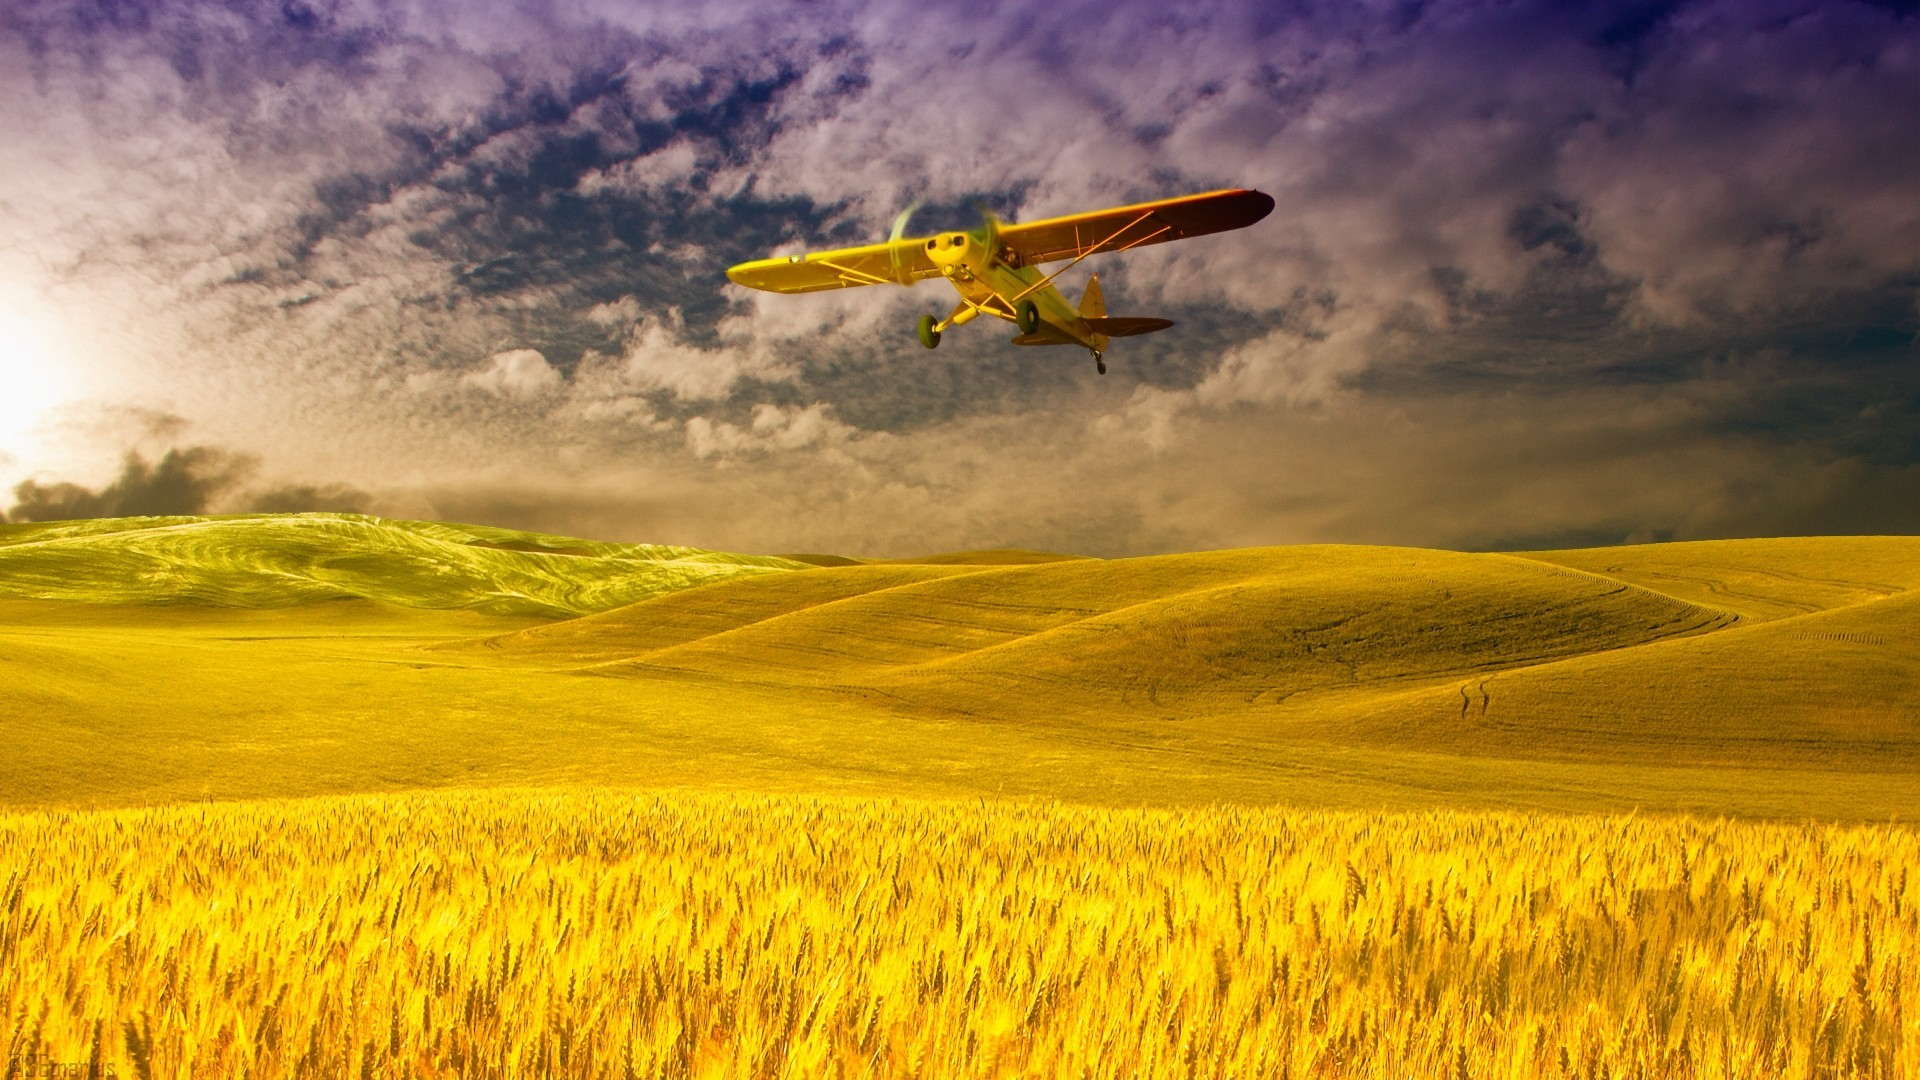 plane over a field of grain wallpaper - Grain Wallpaper